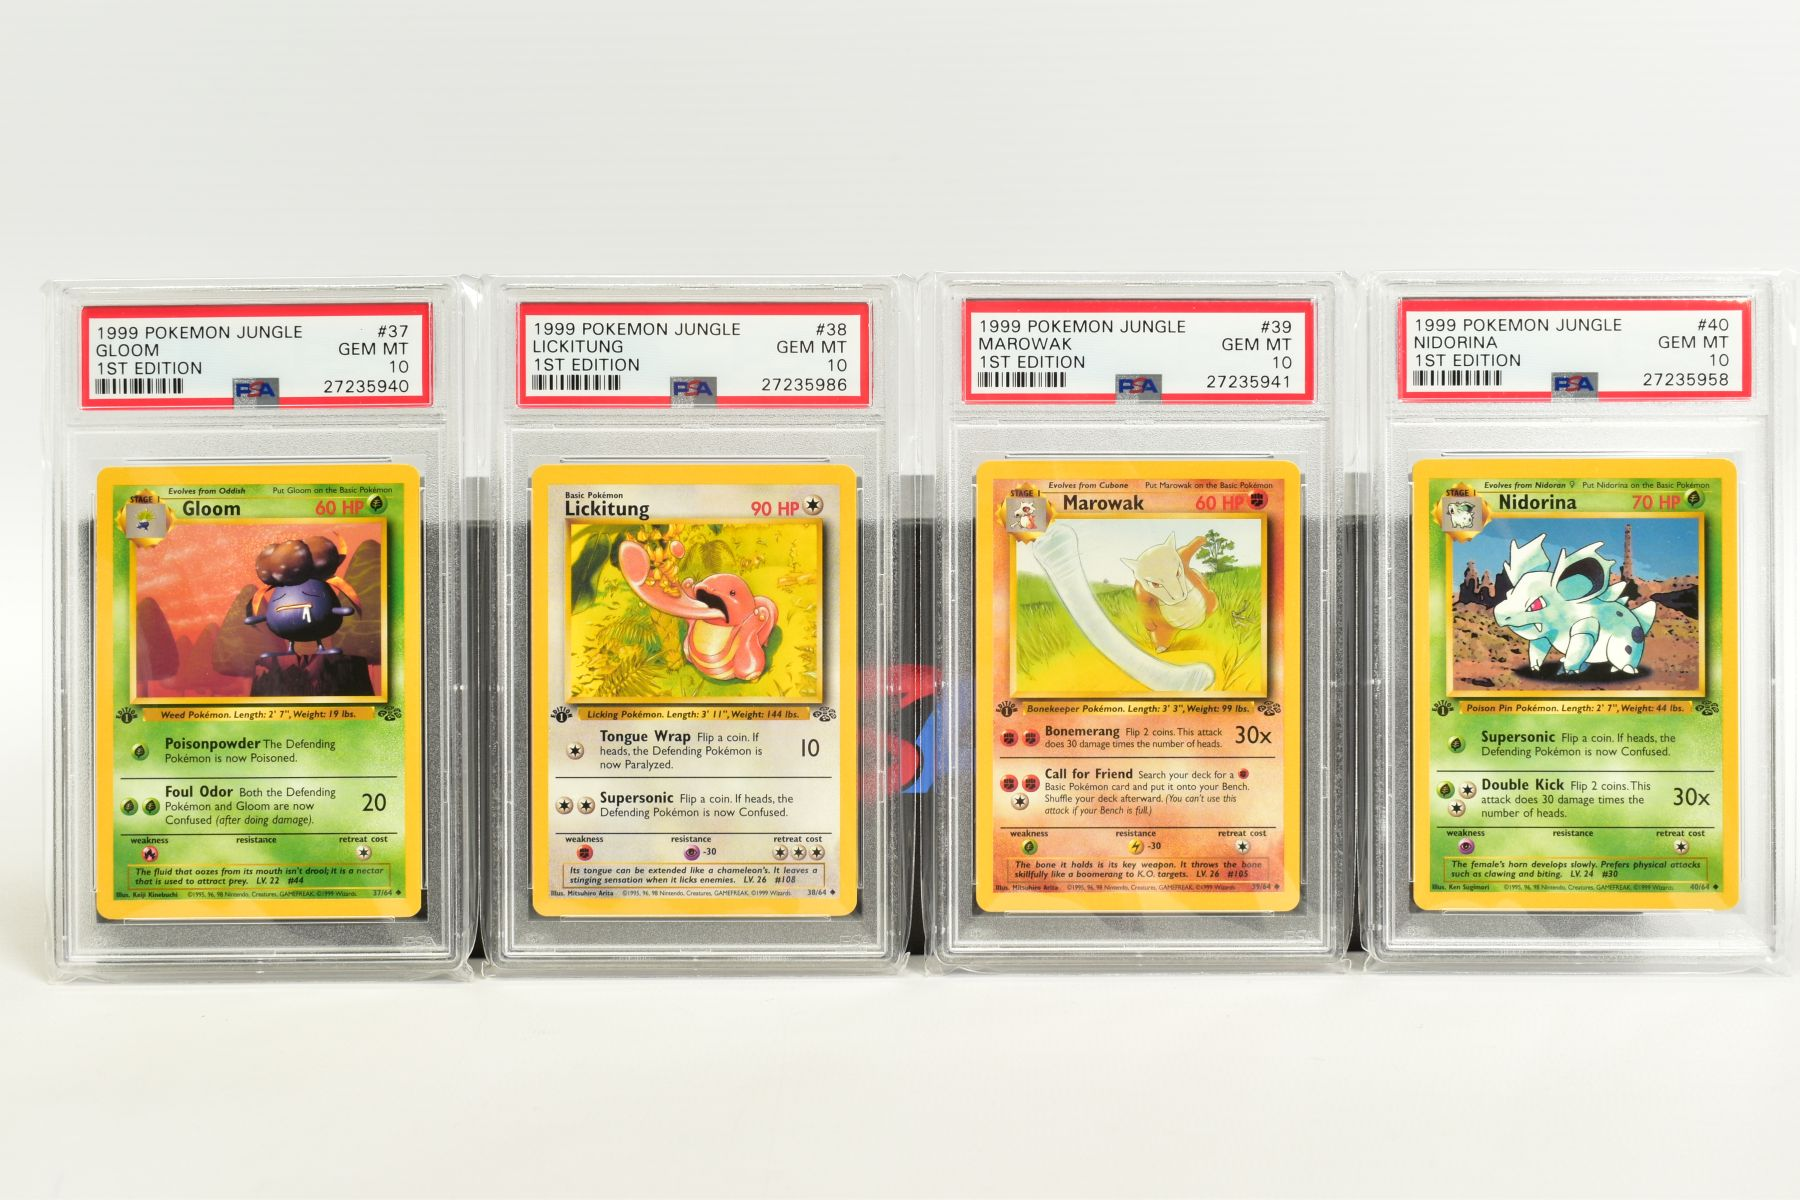 A QUANTITY OF PSA GRADED POKEMON 1ST EDITION JUNGLE SET CARDS, all are graded GEM MINT 10 and are - Image 7 of 13